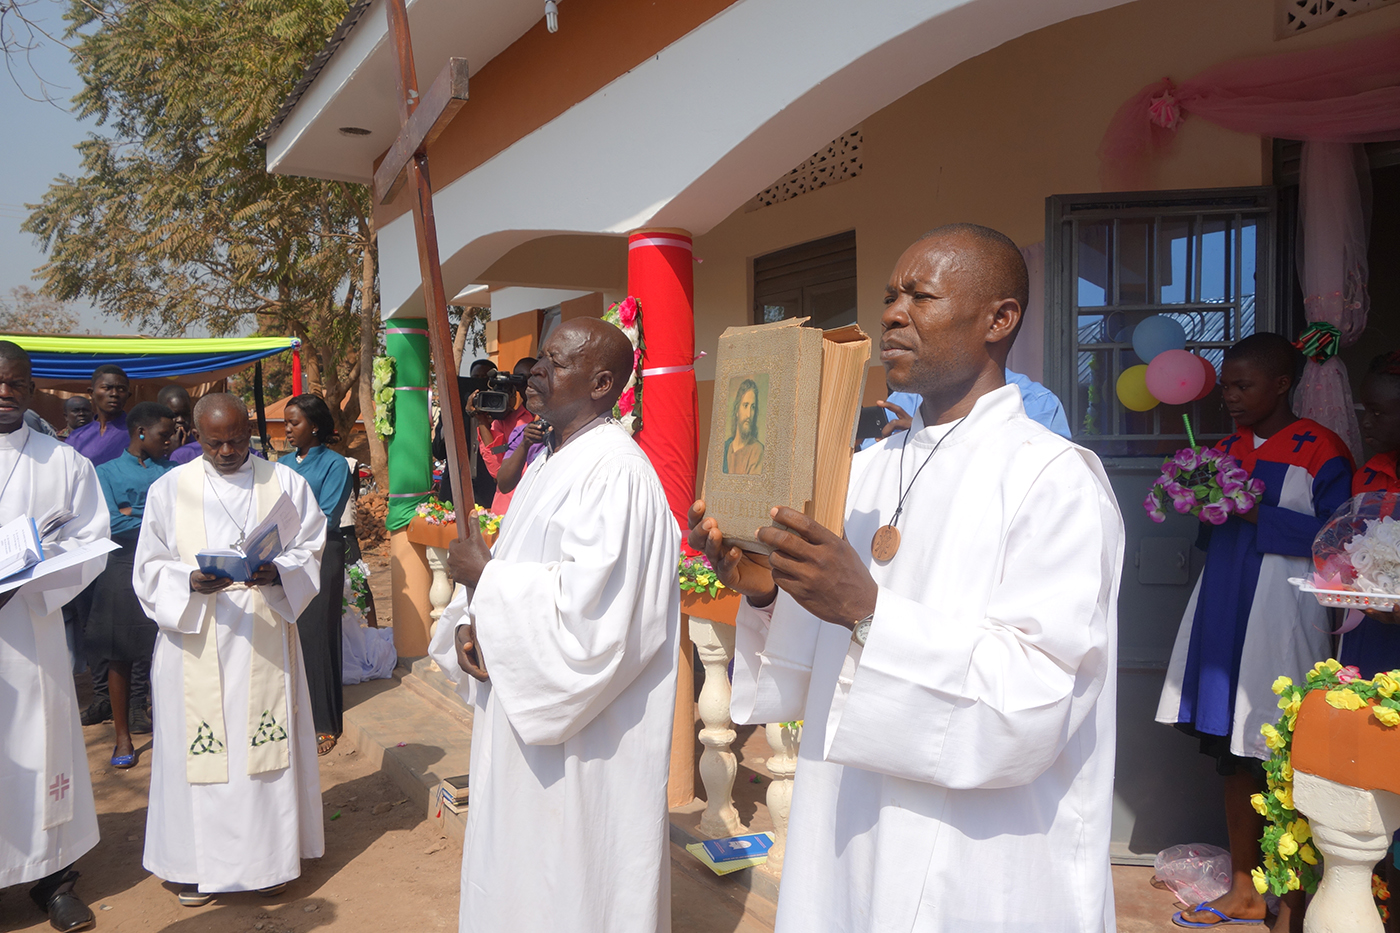 A procession of pastors holding the cross and a Bible